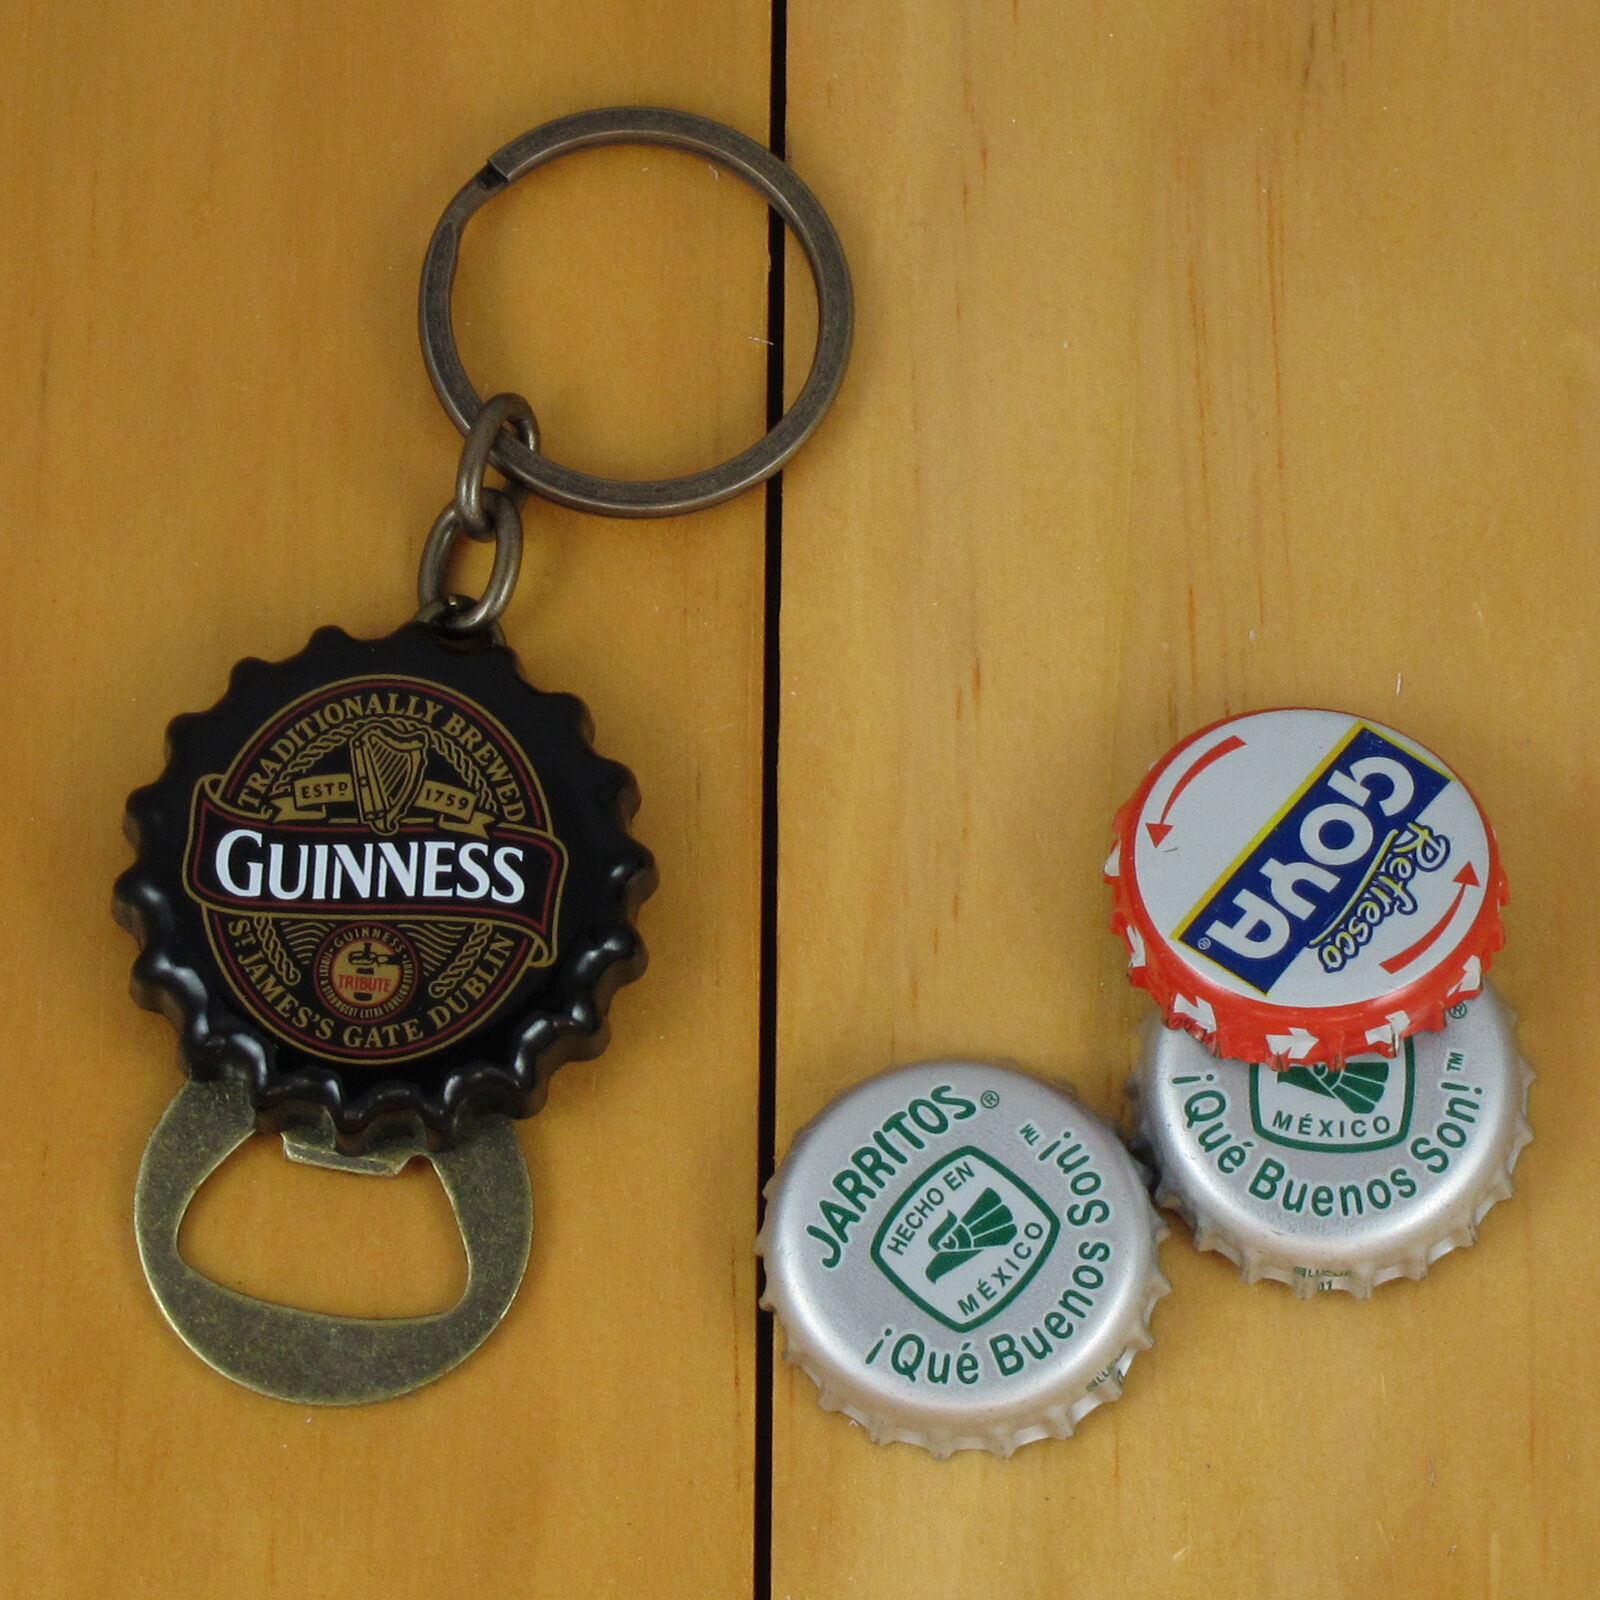 guinness flip out bottle opener keychain black bottle cap style new picclick uk. Black Bedroom Furniture Sets. Home Design Ideas